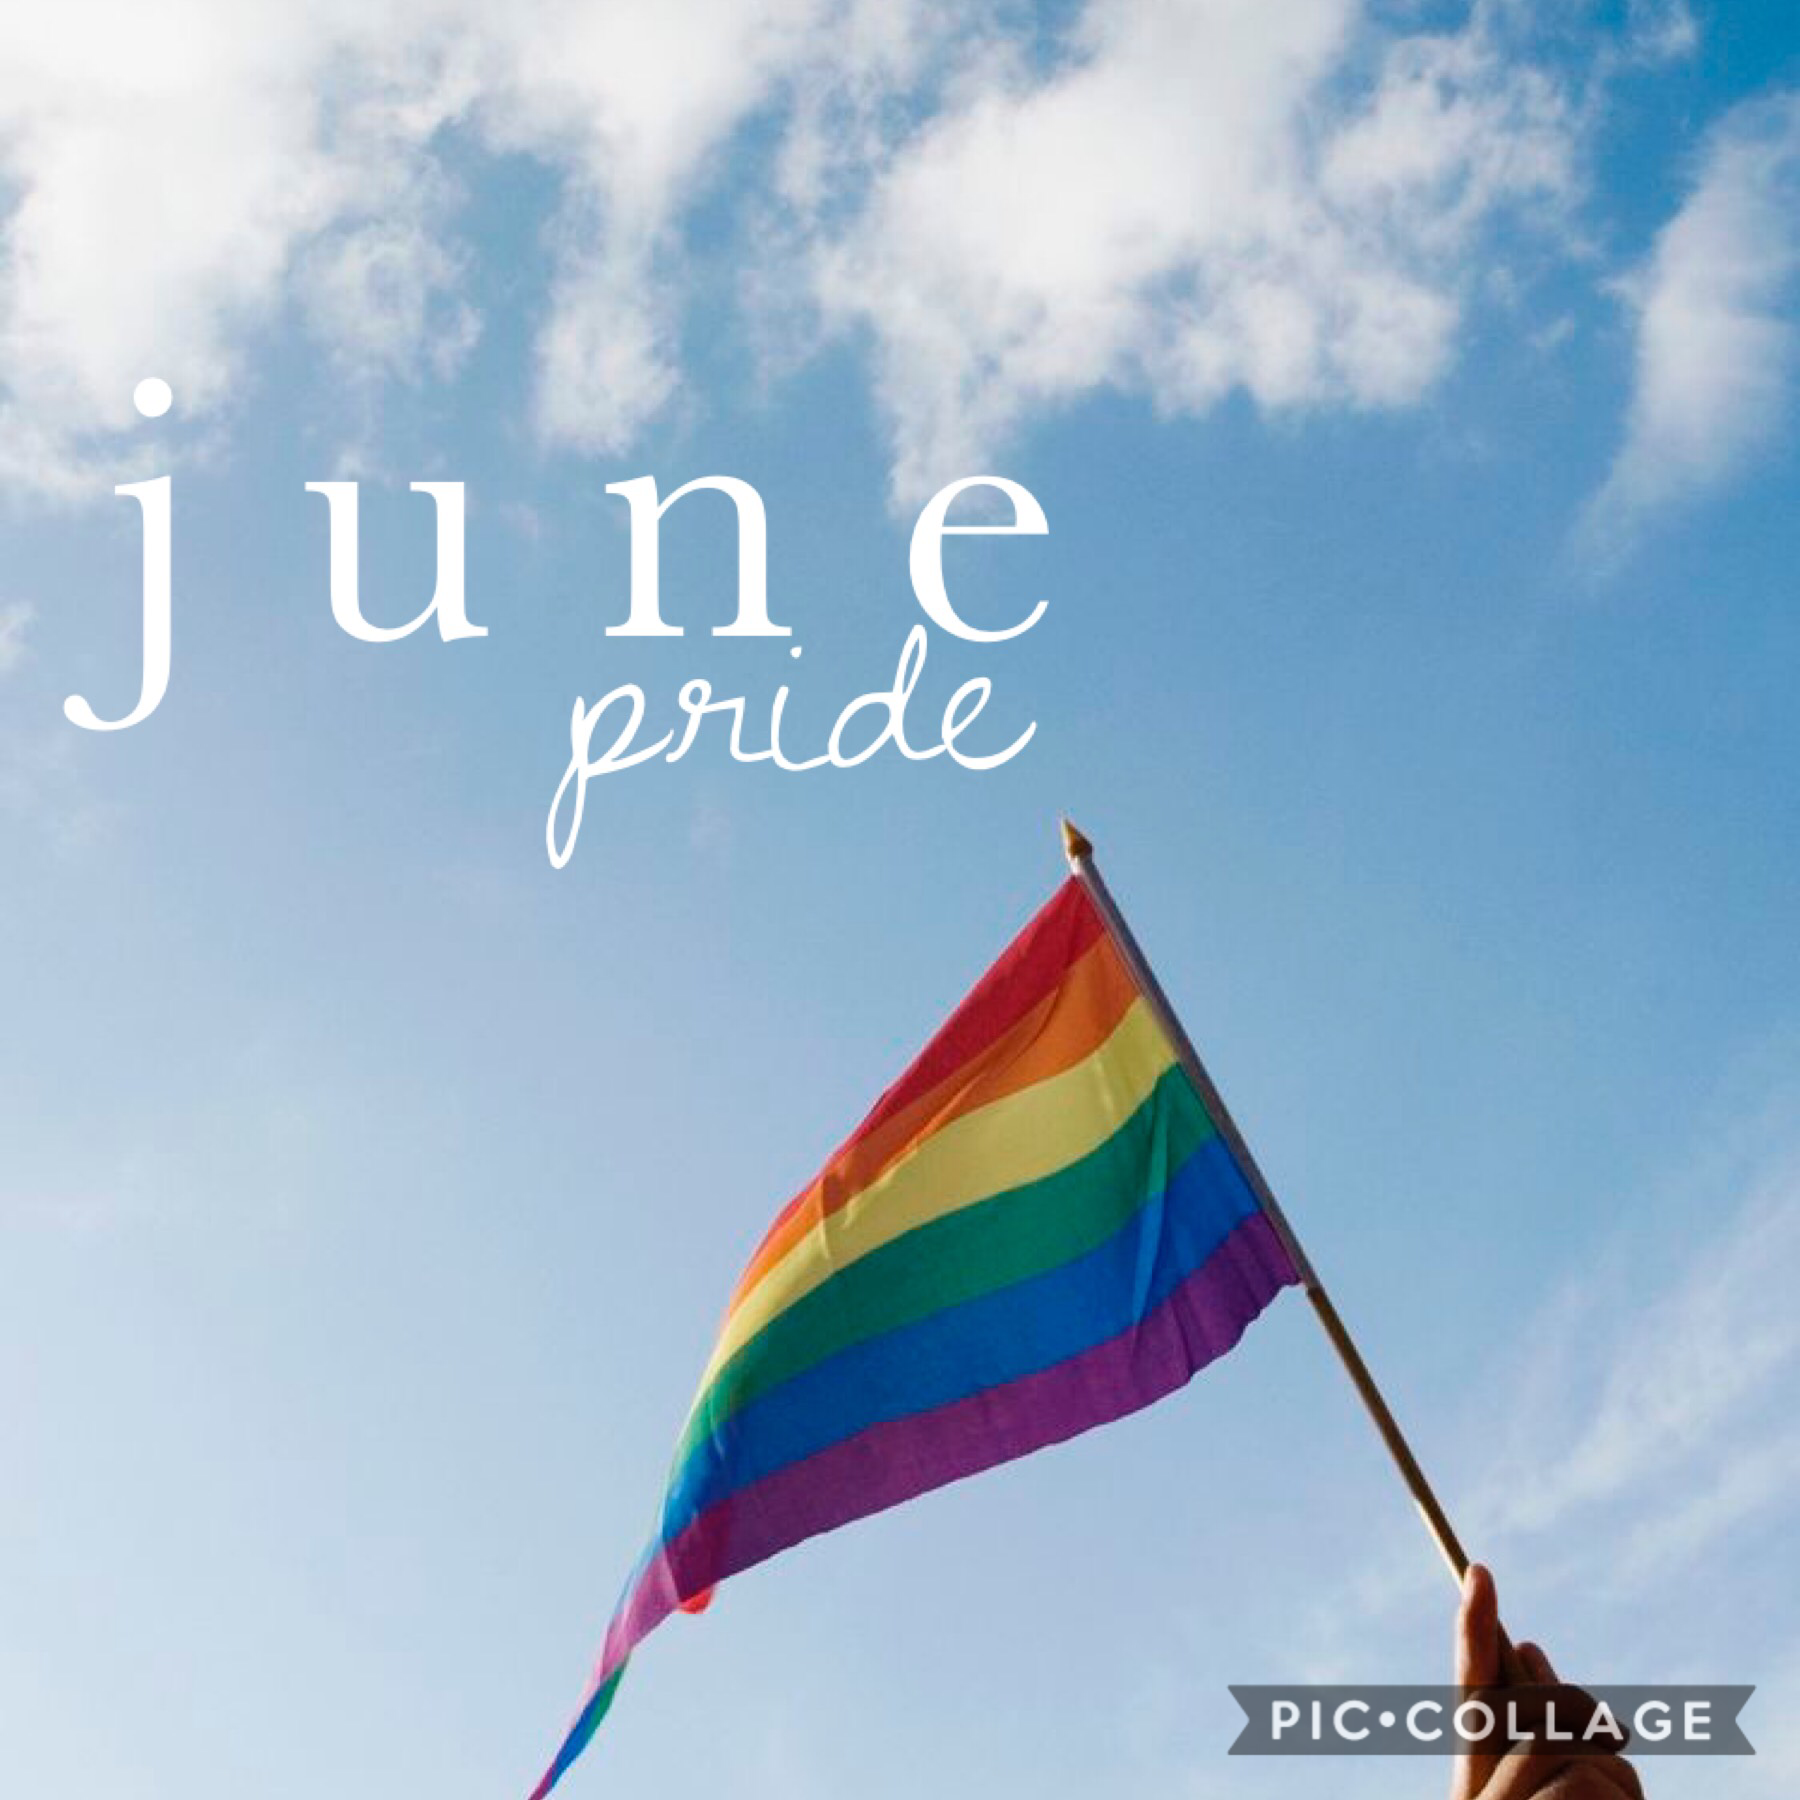 🏳️‍🌈t a p🏳️‍🌈 I know this is very simple but happy pride months guys    🏳️‍🌈 l o v e w I n s 🏳️‍🌈